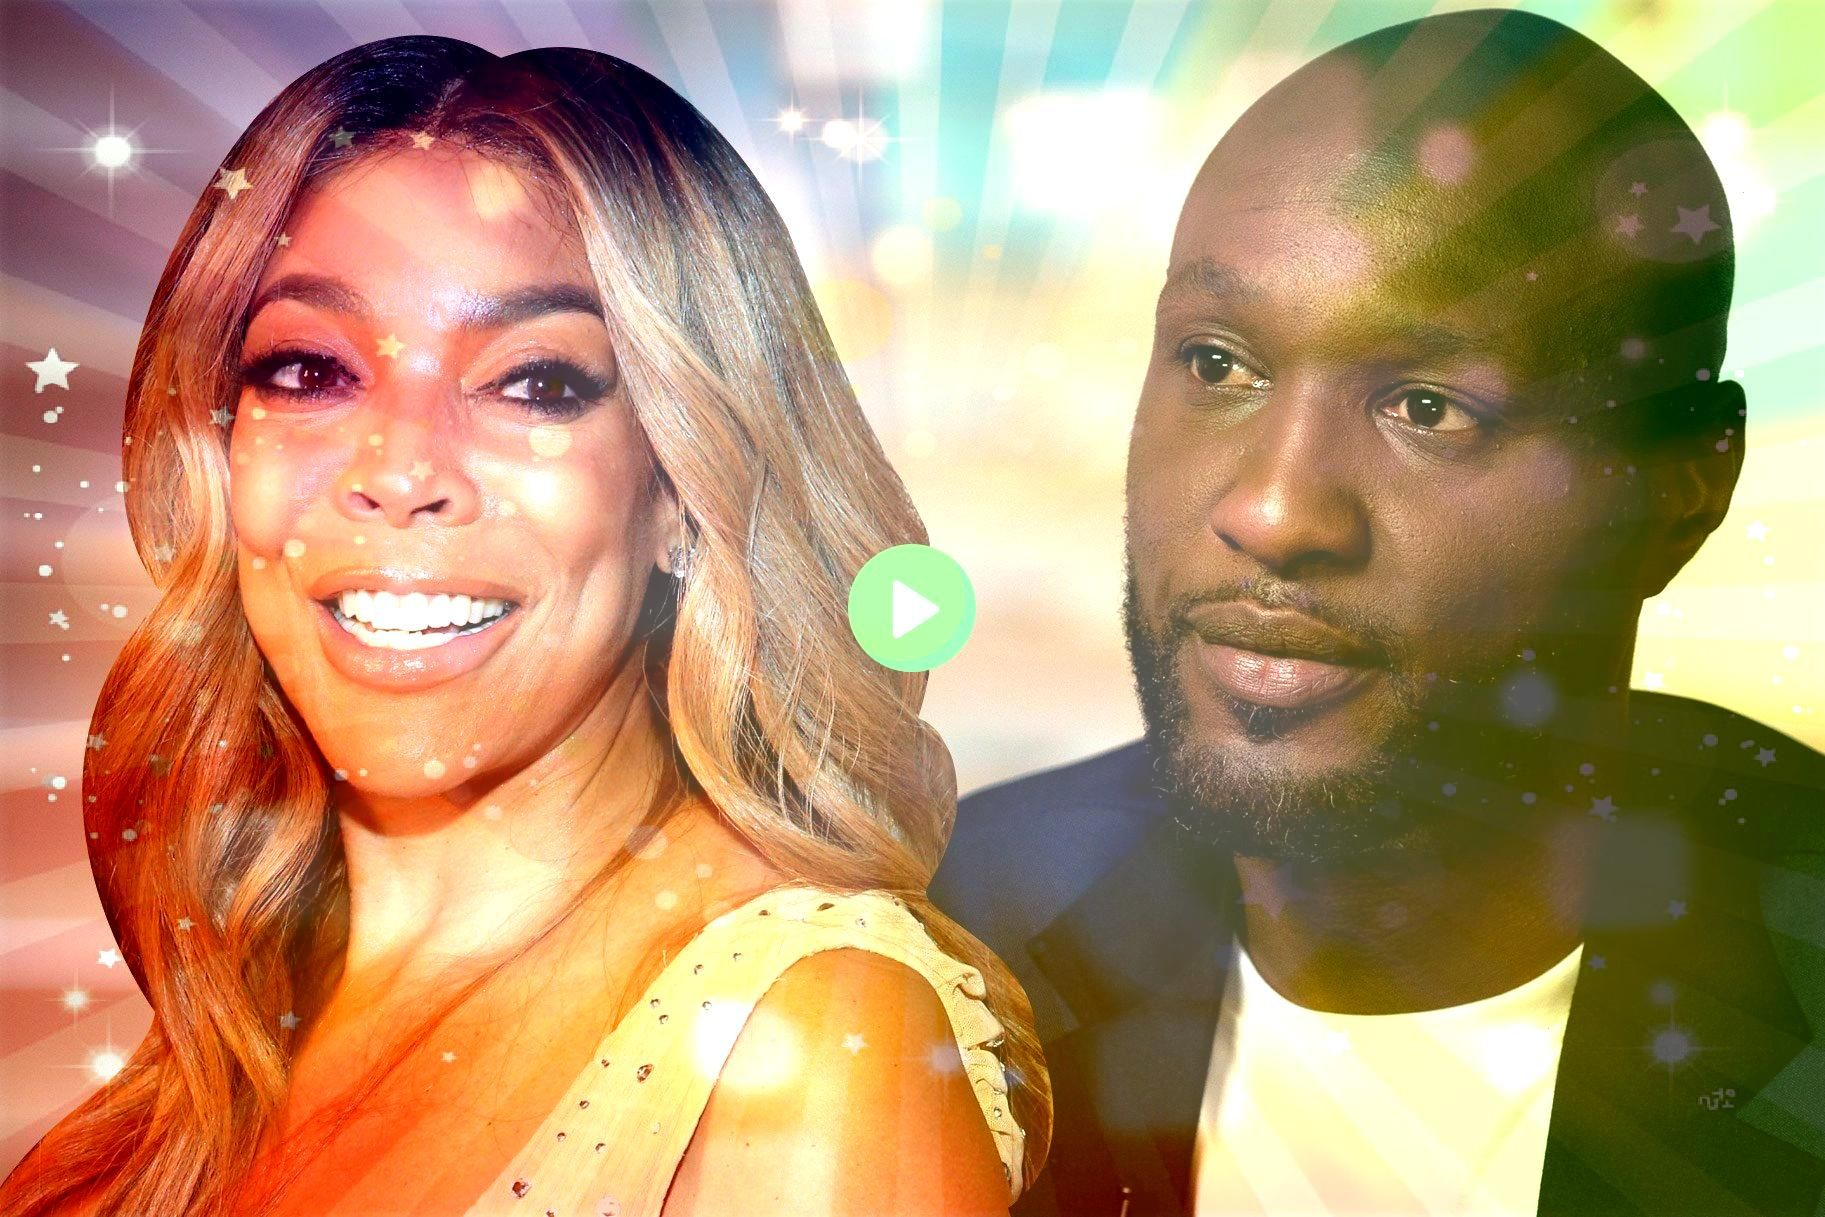 Williams Thinks Lamar Odoms Son Was Right To Be Hurt Over His Sudden Engagement Wendy Williams Thinks Lamar Odoms Son Was Right To Be Hurt Over His Sudden Engagement Buy...